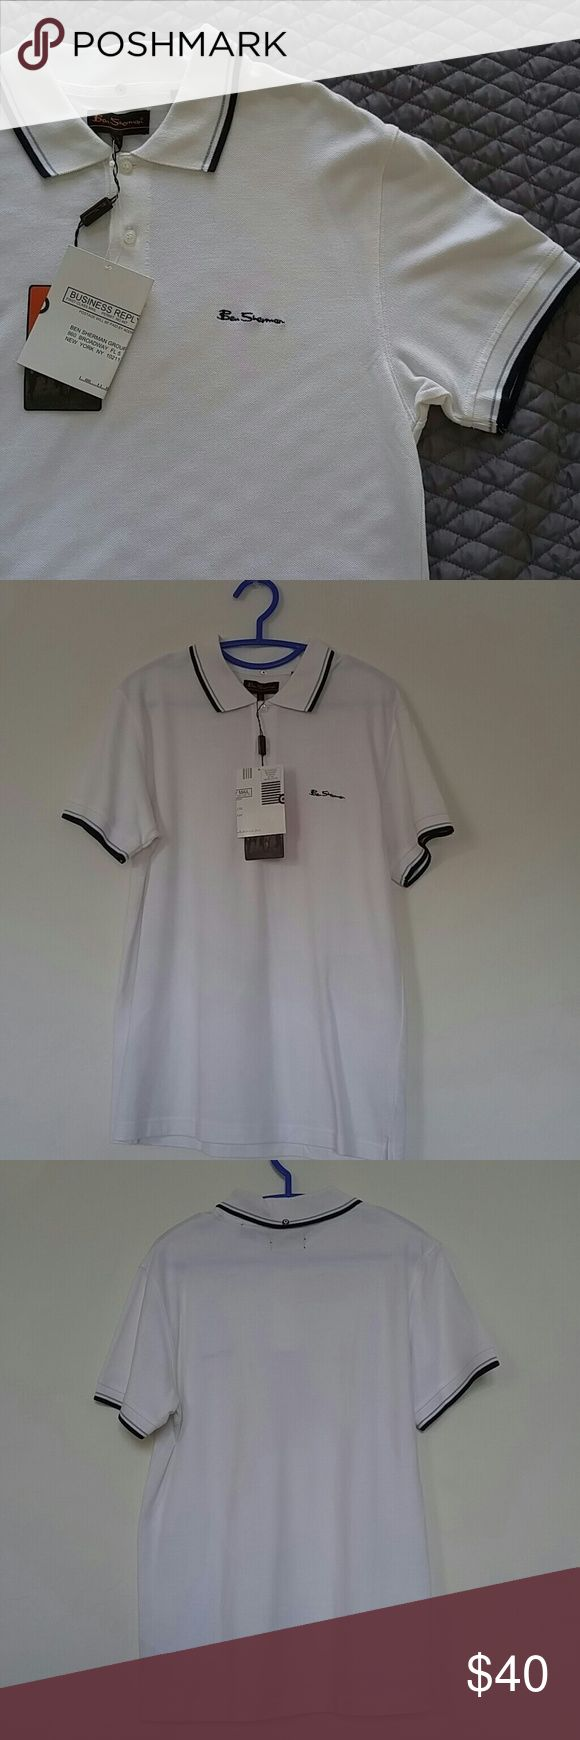 NWT Ben Sherman men's Polo collar shirt NEW Brand: Ben Sherman Size: Large (3) Material: 100% Cotton. Machine Washable This is Brand New with original tags still on it! It has some postcard thing and then the orange ben Sherman tag. Short sleeve. Polo. Collared. Ben Sherman logo on front chest. Ben Sherman logo target dot button on the back collar. Excellent Condition - it's new!  Smoke free home Ben Sherman Shirts Polos